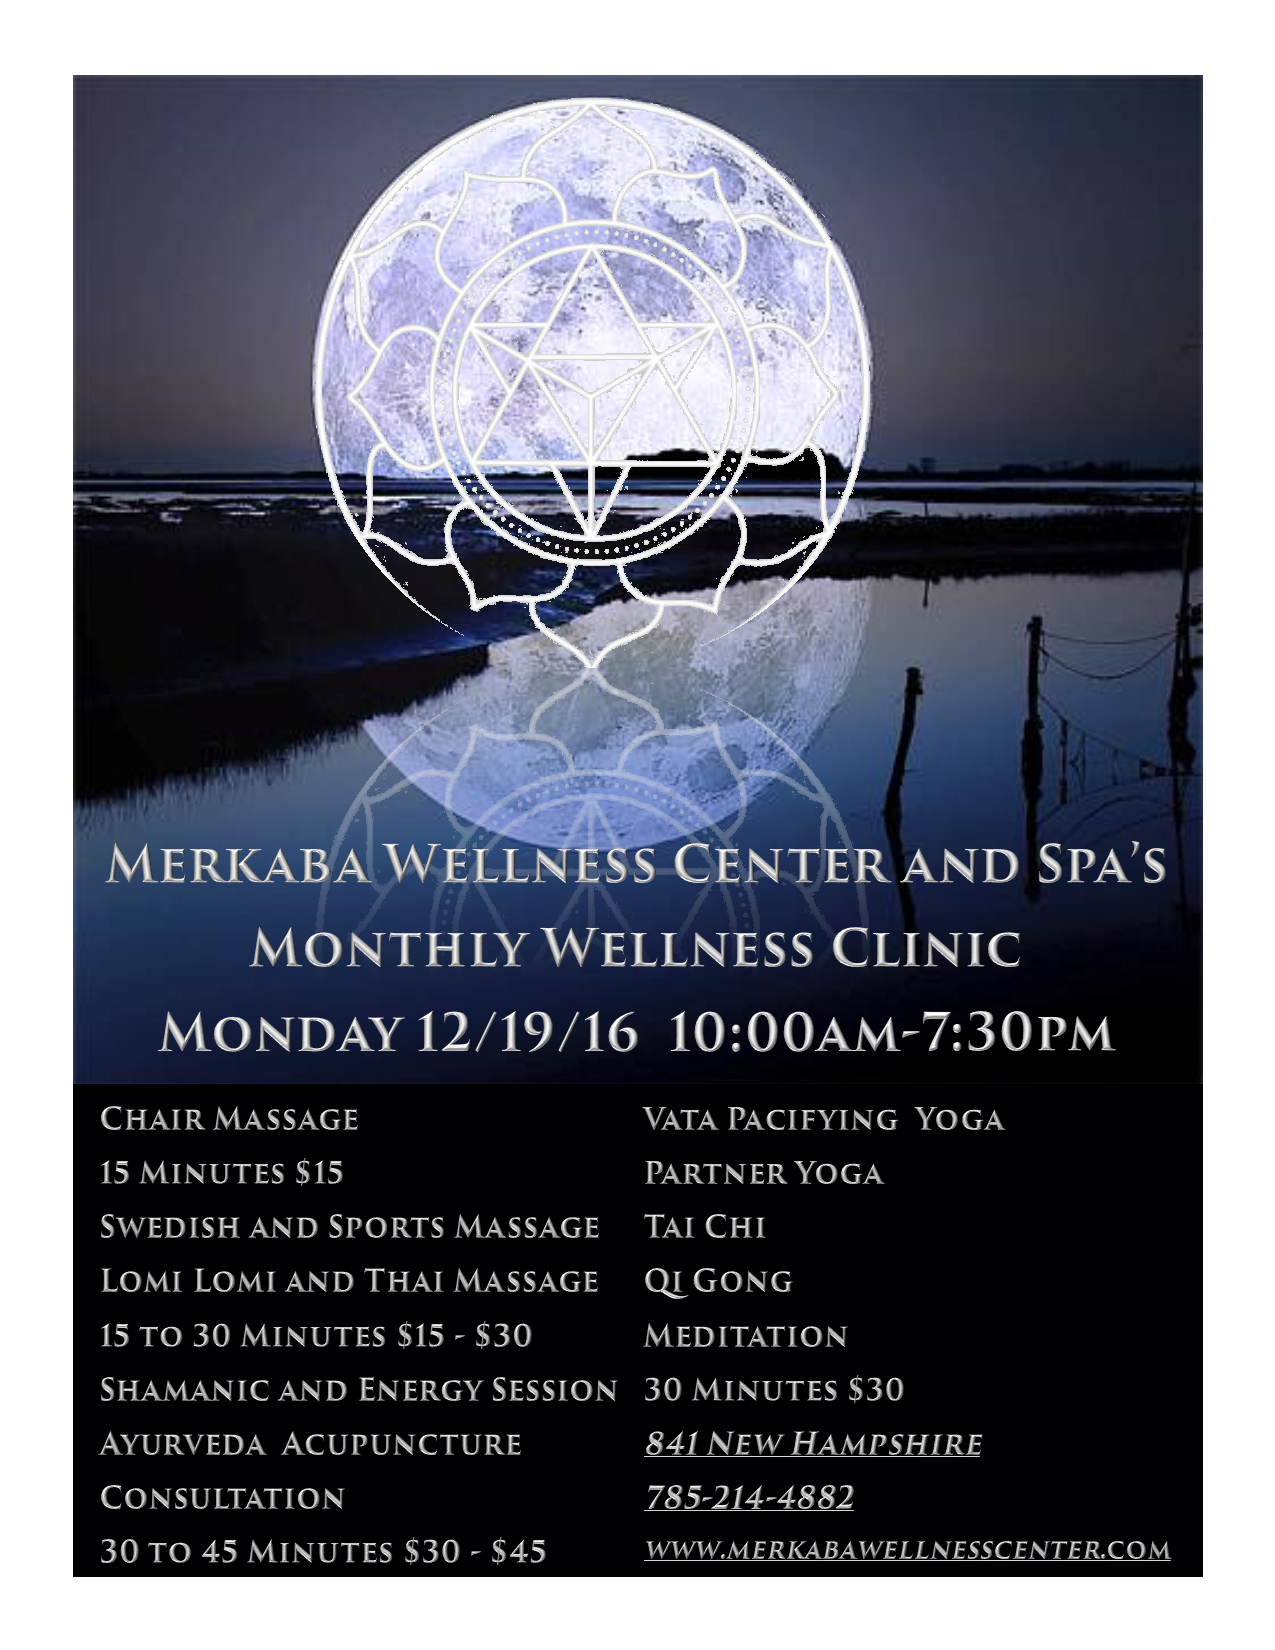 Have you ever wanted to have a Massage, but just cant seem to manage the time or are short of funds? Have you ever wanted to learn more about Ayurveda or Shamanic and Energy Work? What about Tai Chi and Yoga? Come to our Monthly Clinic and experience all of what Merkaba Wellness Center and Spa has to offer, in shorter sessions and at a lower cost.  Call today, book online or drop in.  Pay it forward by donating $15 to the Monthly Clinic for those in need. 785-214-4882 841 New Hampshire  www.merkabawellnesscenter.com